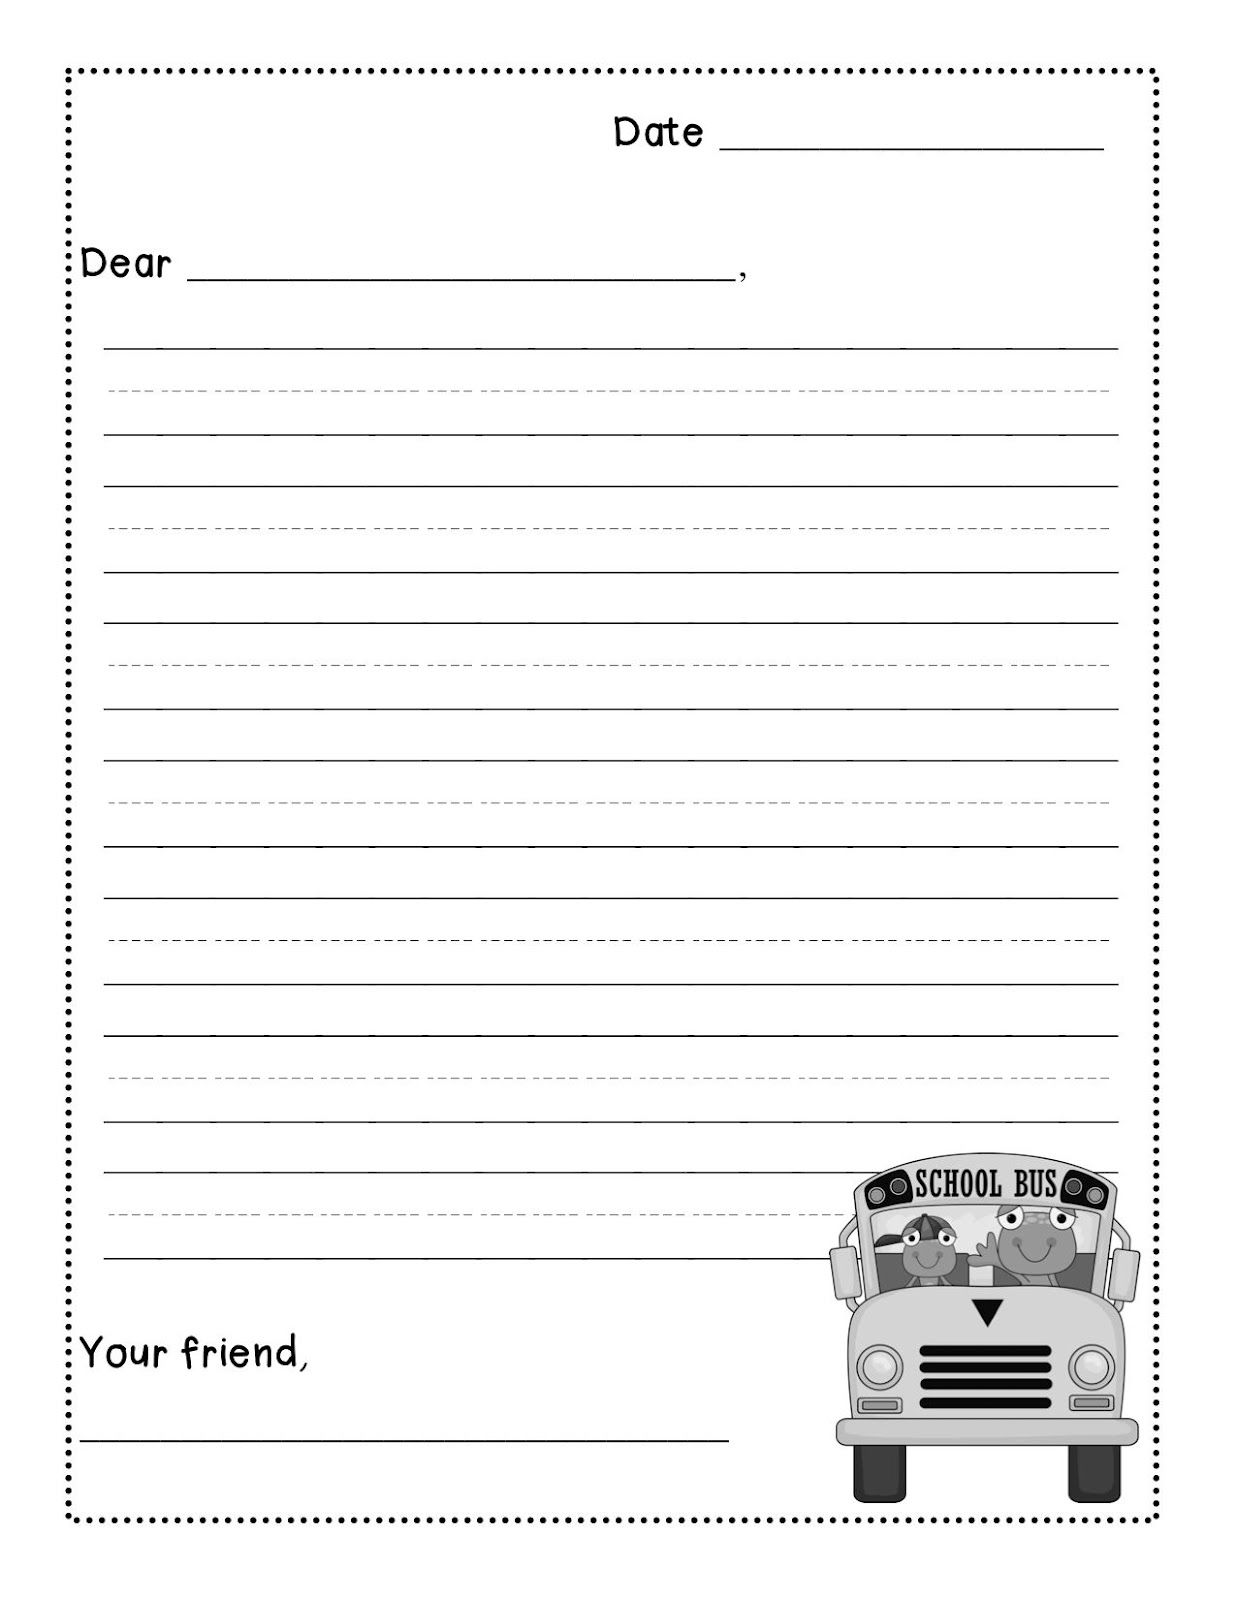 image about Printable Friendly Letter Template identified as Pleasant Letter Composing Freebie - levelized templates up for